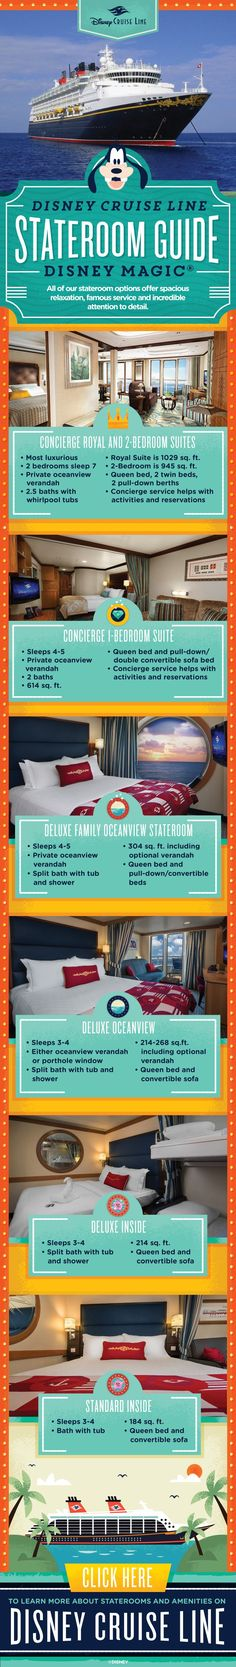 [CREATIVE TO CHANGE] All Disney Cruise Line stateroom options offer spacious relaxation, famous Guest service and incredible attention to detail. Check out this handy guide to see which stateroom is best for your family onboard the Disney Wonder!